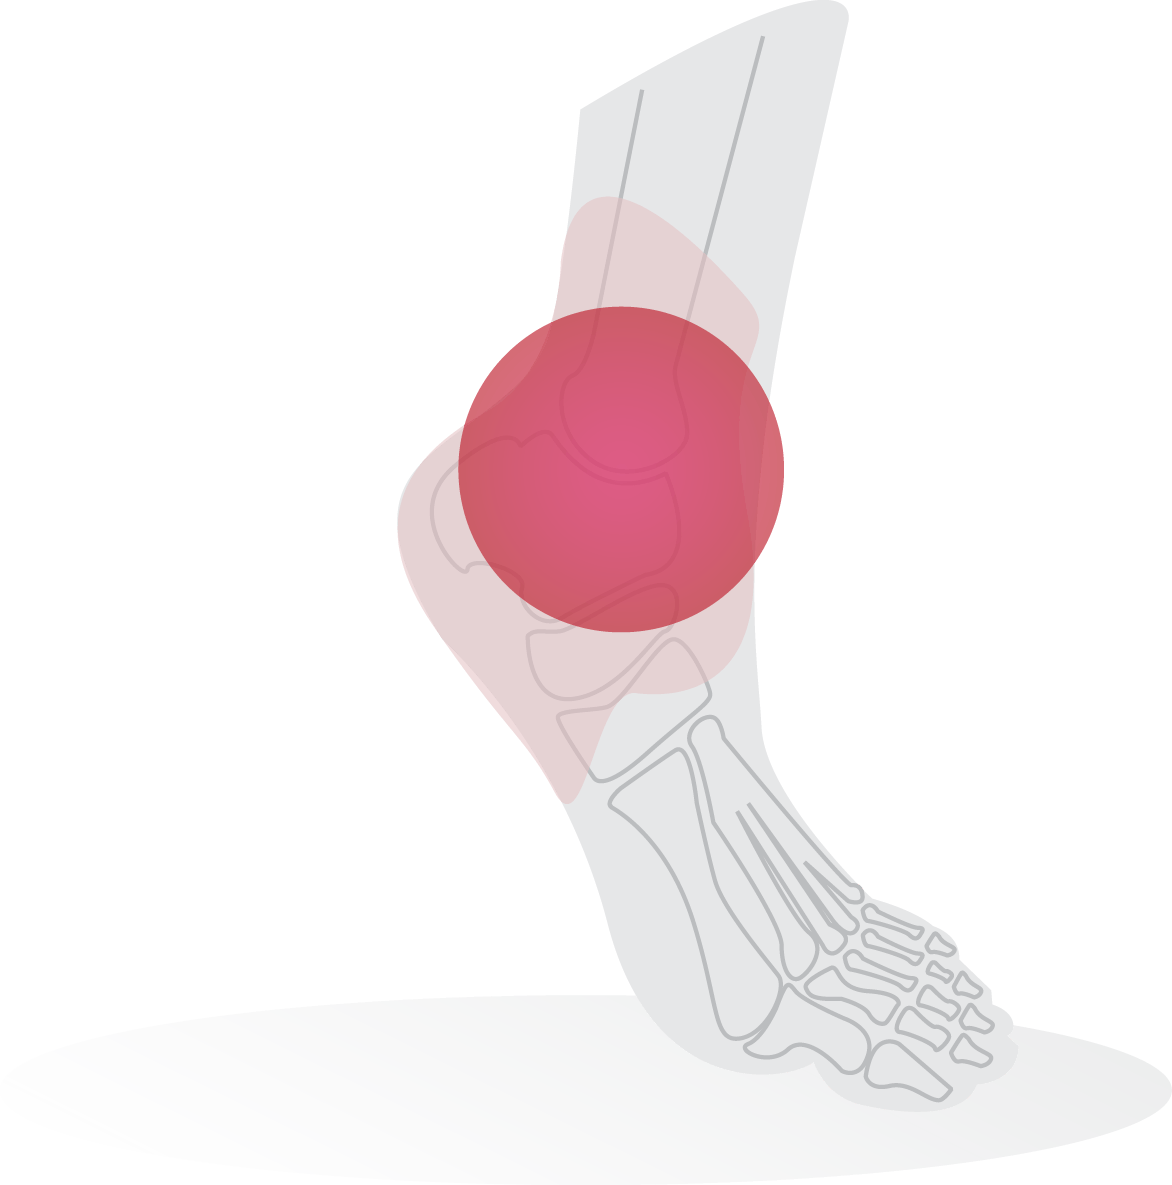 Ankle pressure-point diagram